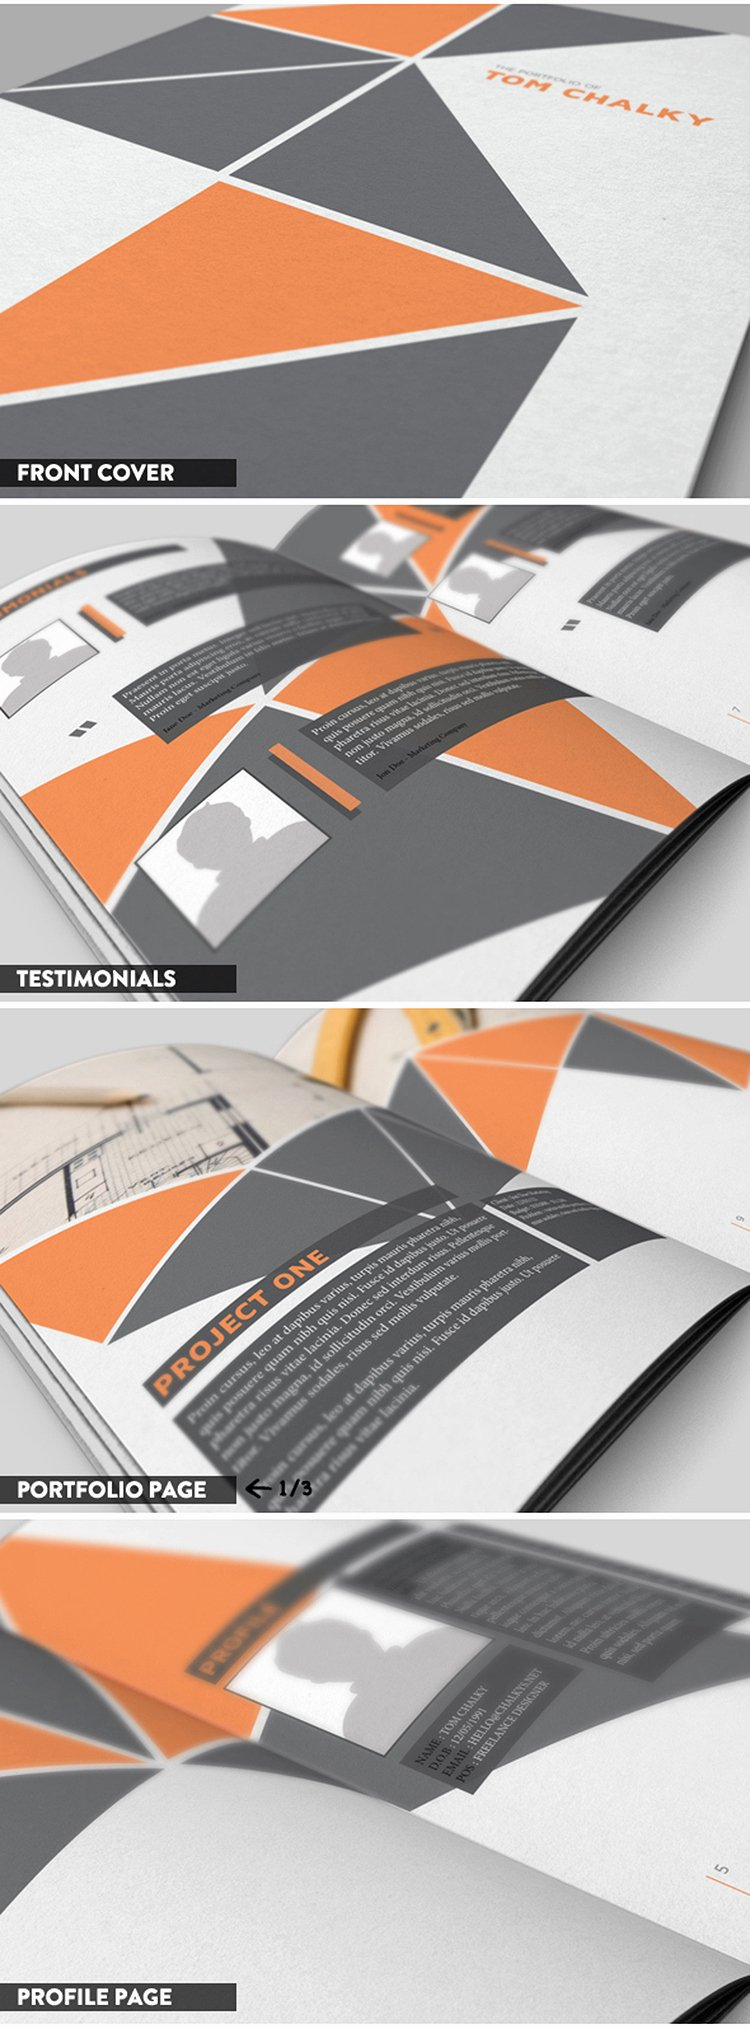 free 16 page case study portfolio booklet indesign file